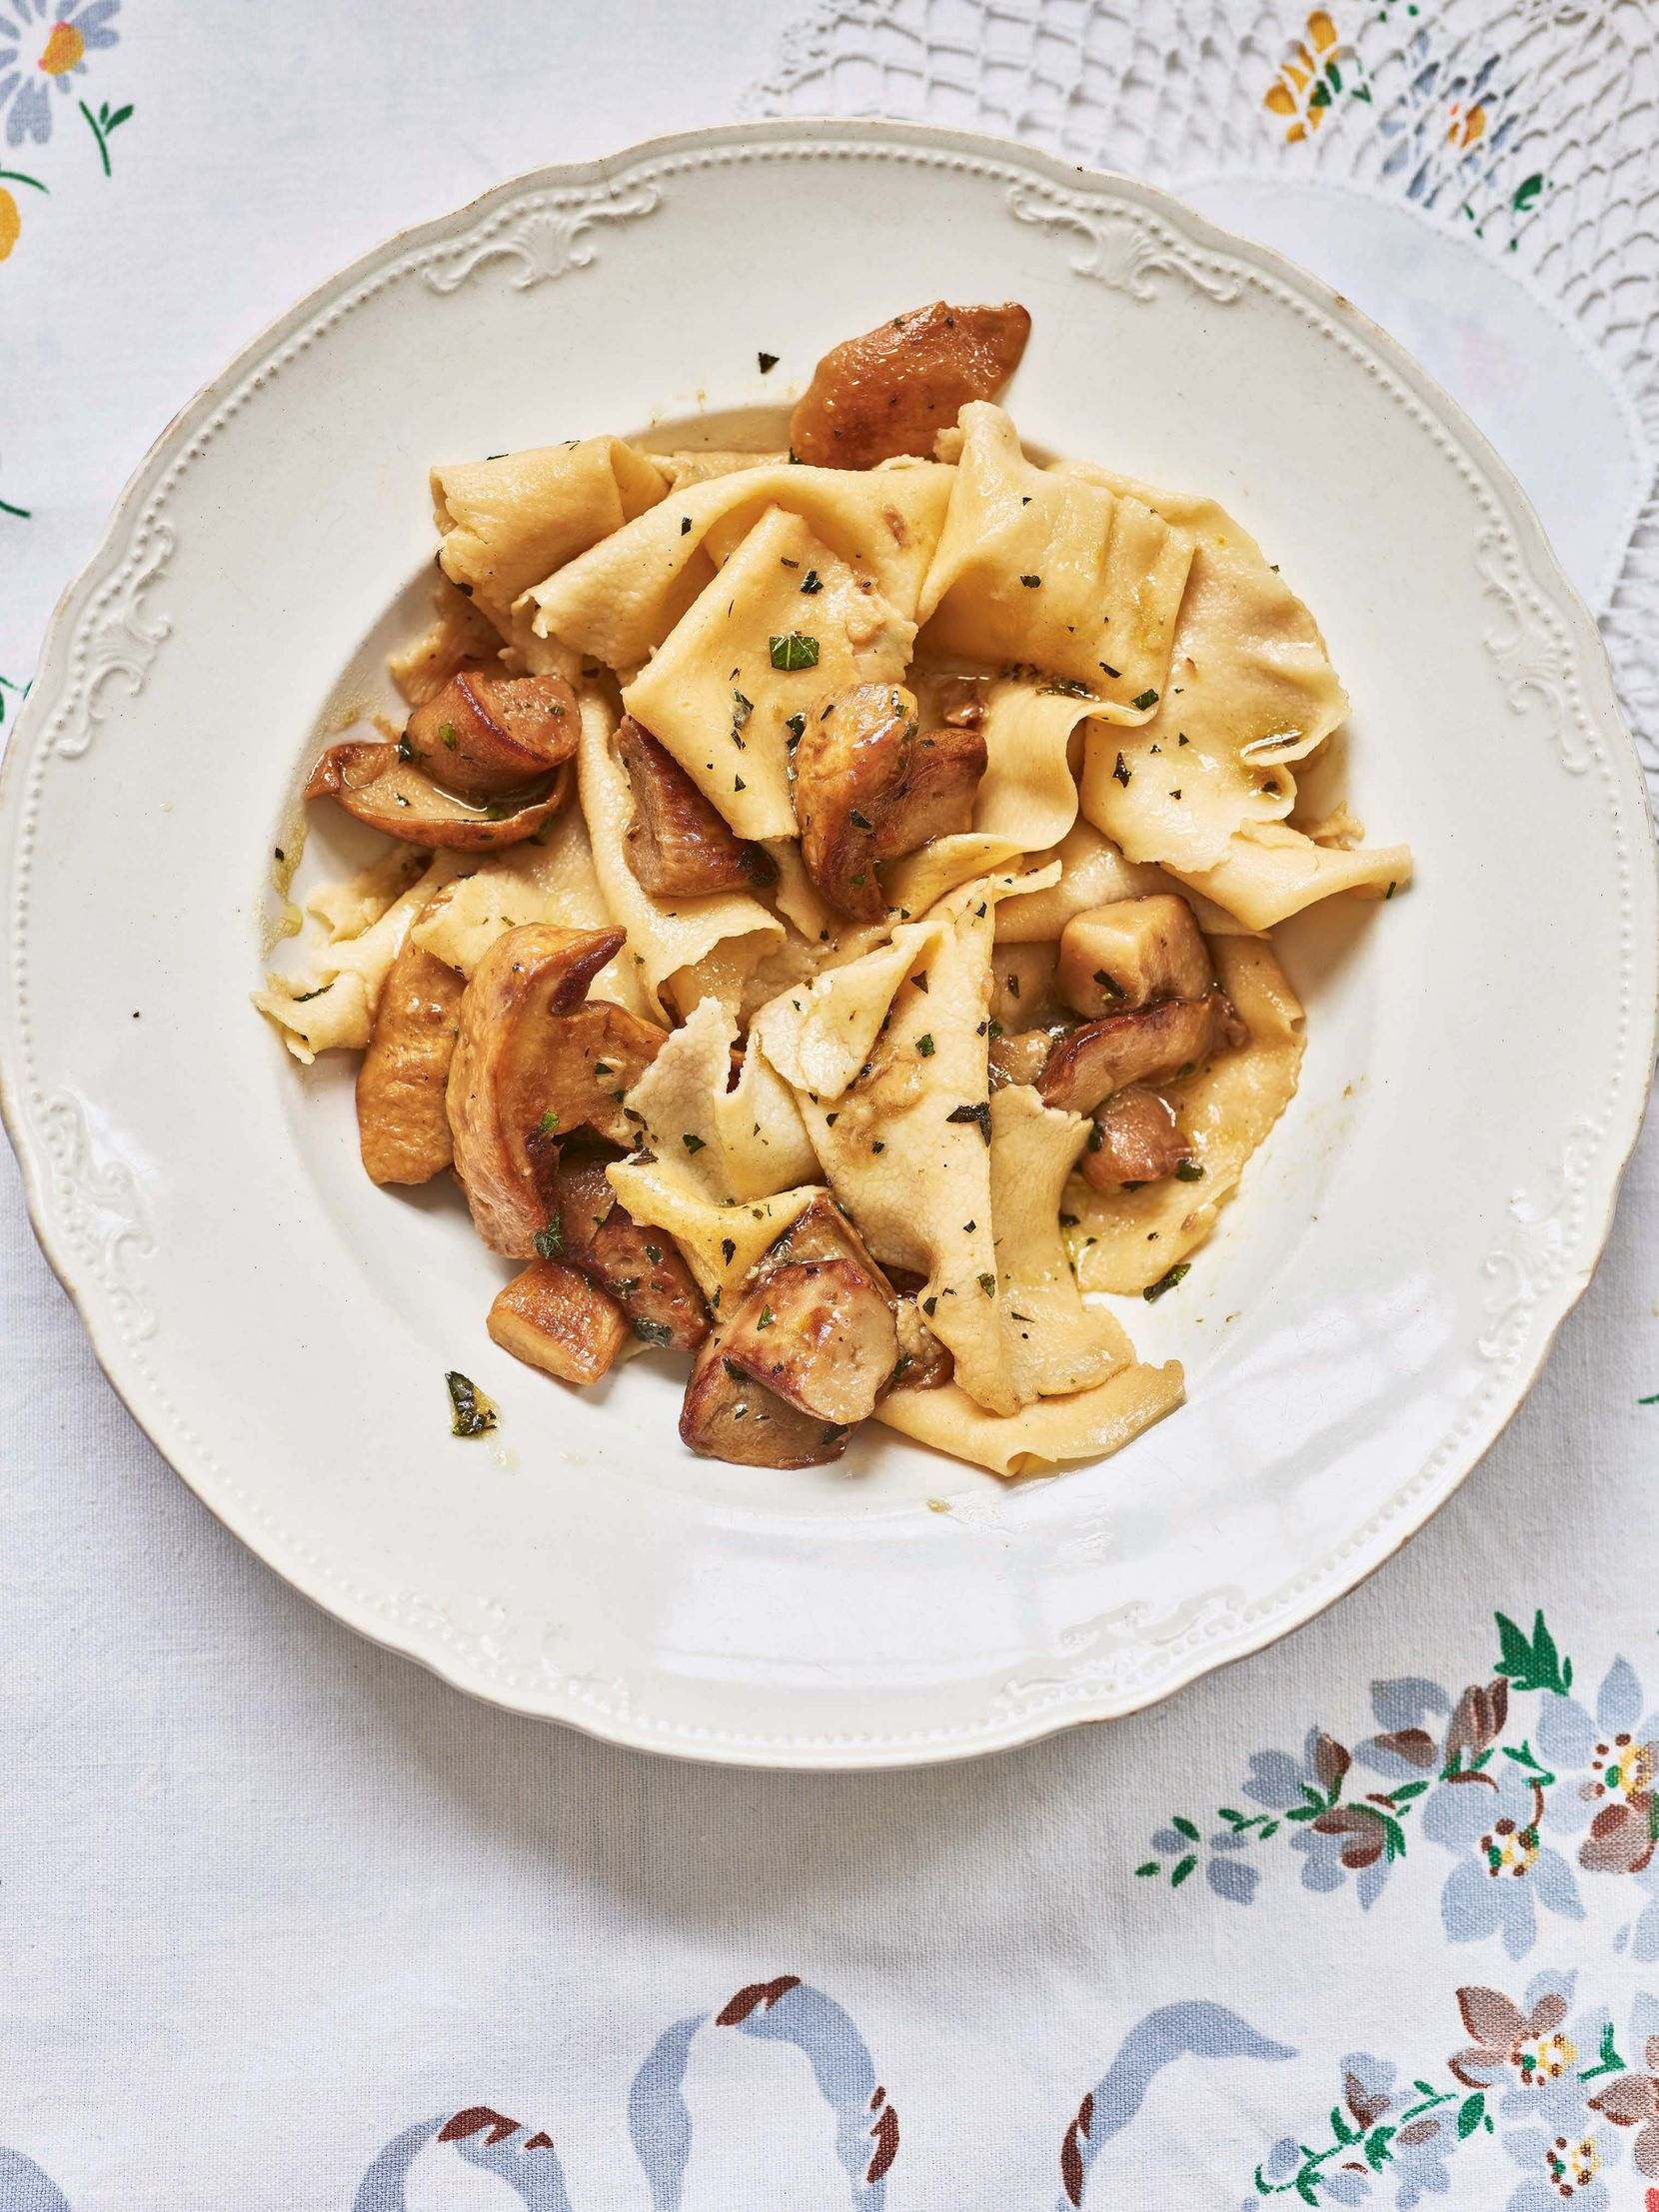 Marica's Strapponi with Porcini Mushrooms from 'Pasta Grannies: The Secrets of Italy's Best Home Cooks', by Vicky Bennison